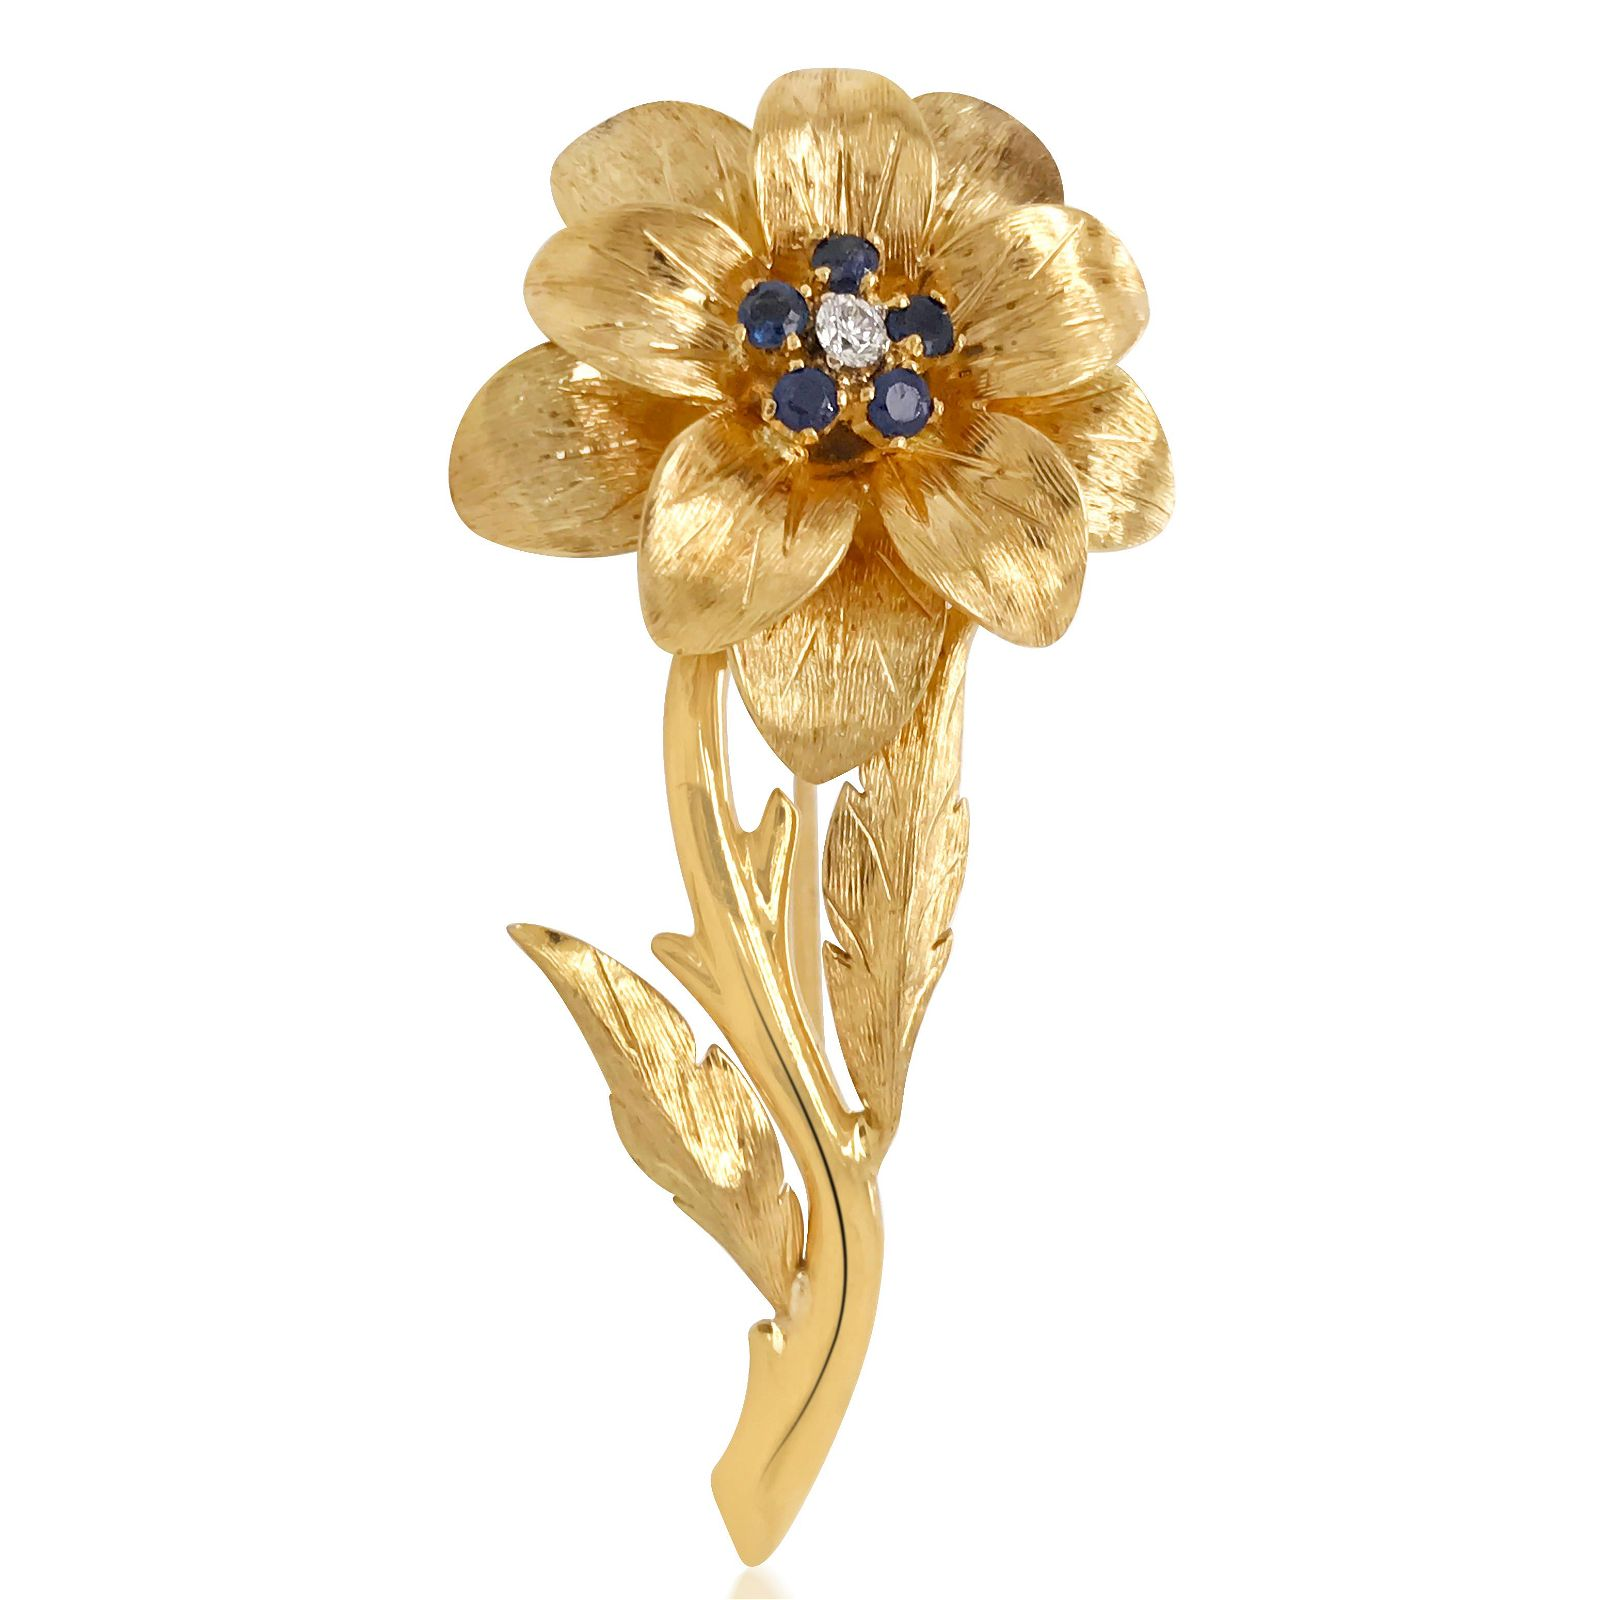 Tiffany & Co., 18K Gold and Sapphire Brooch